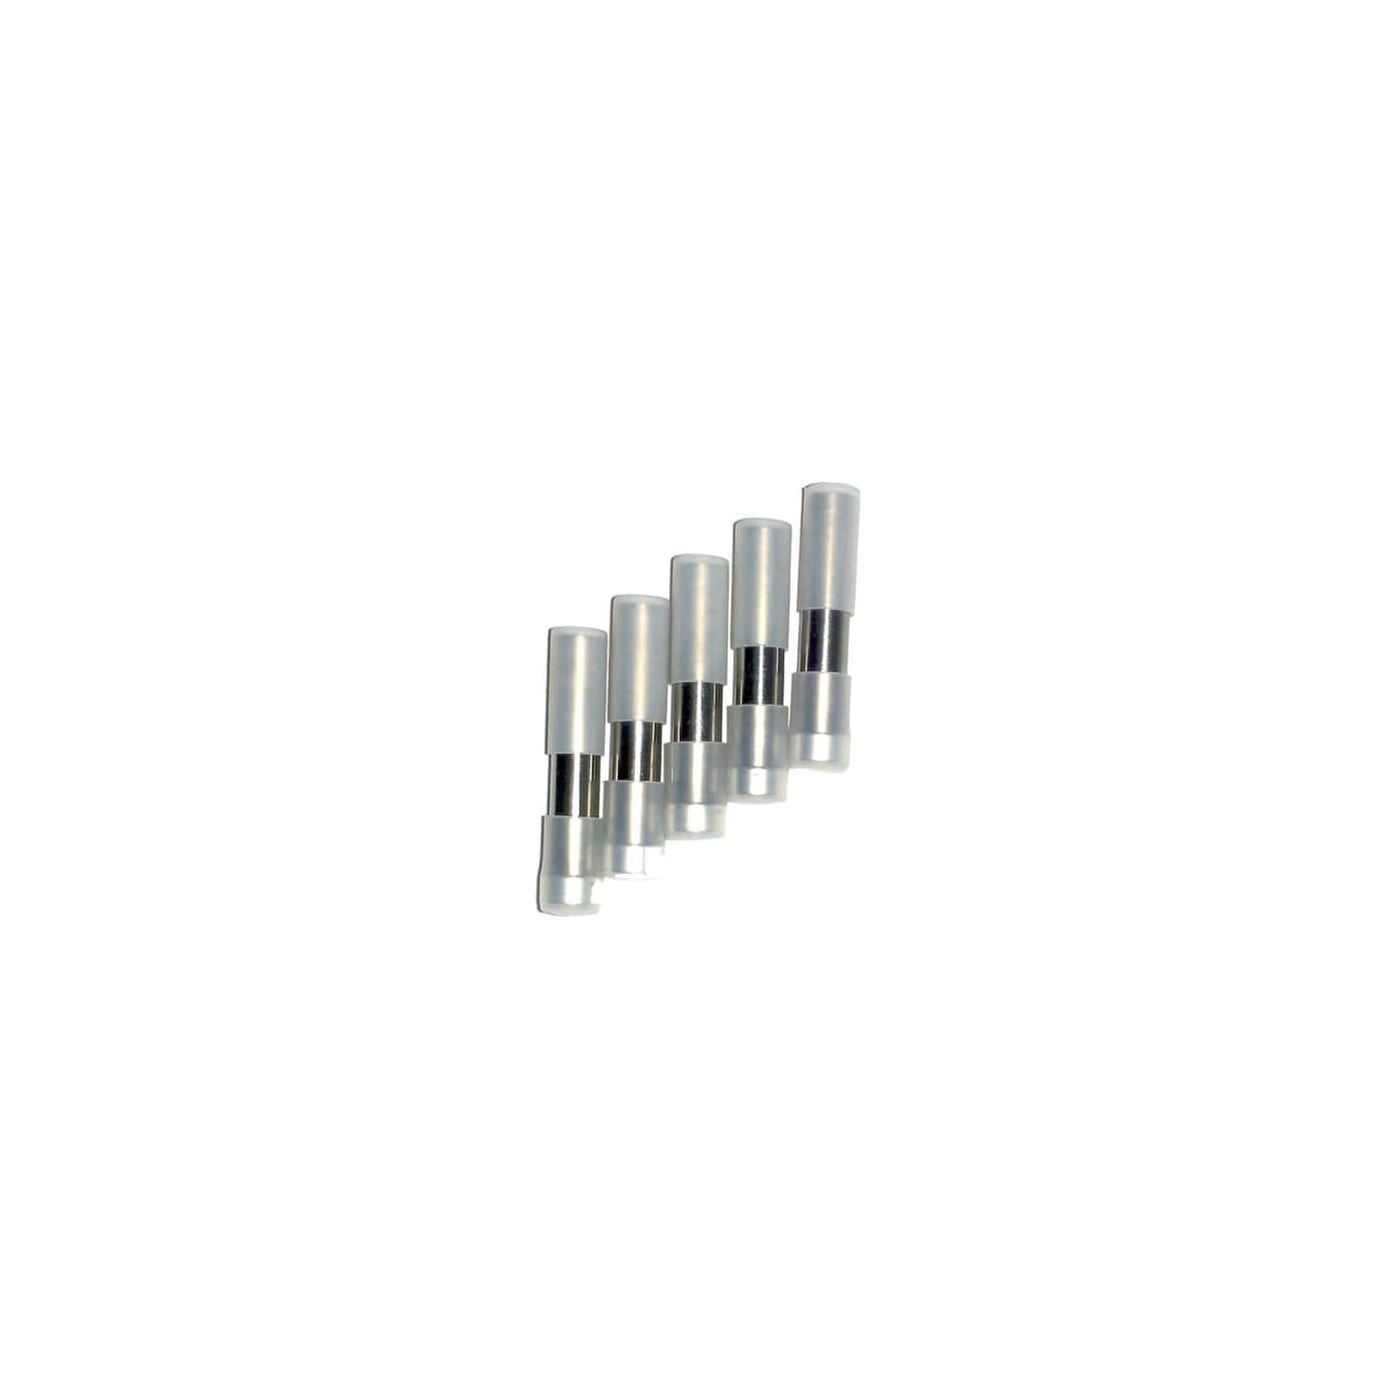 Boge 801 Fusion Cartomizer Standard Resistance 5 Pack 2.8 ohm - Stainless